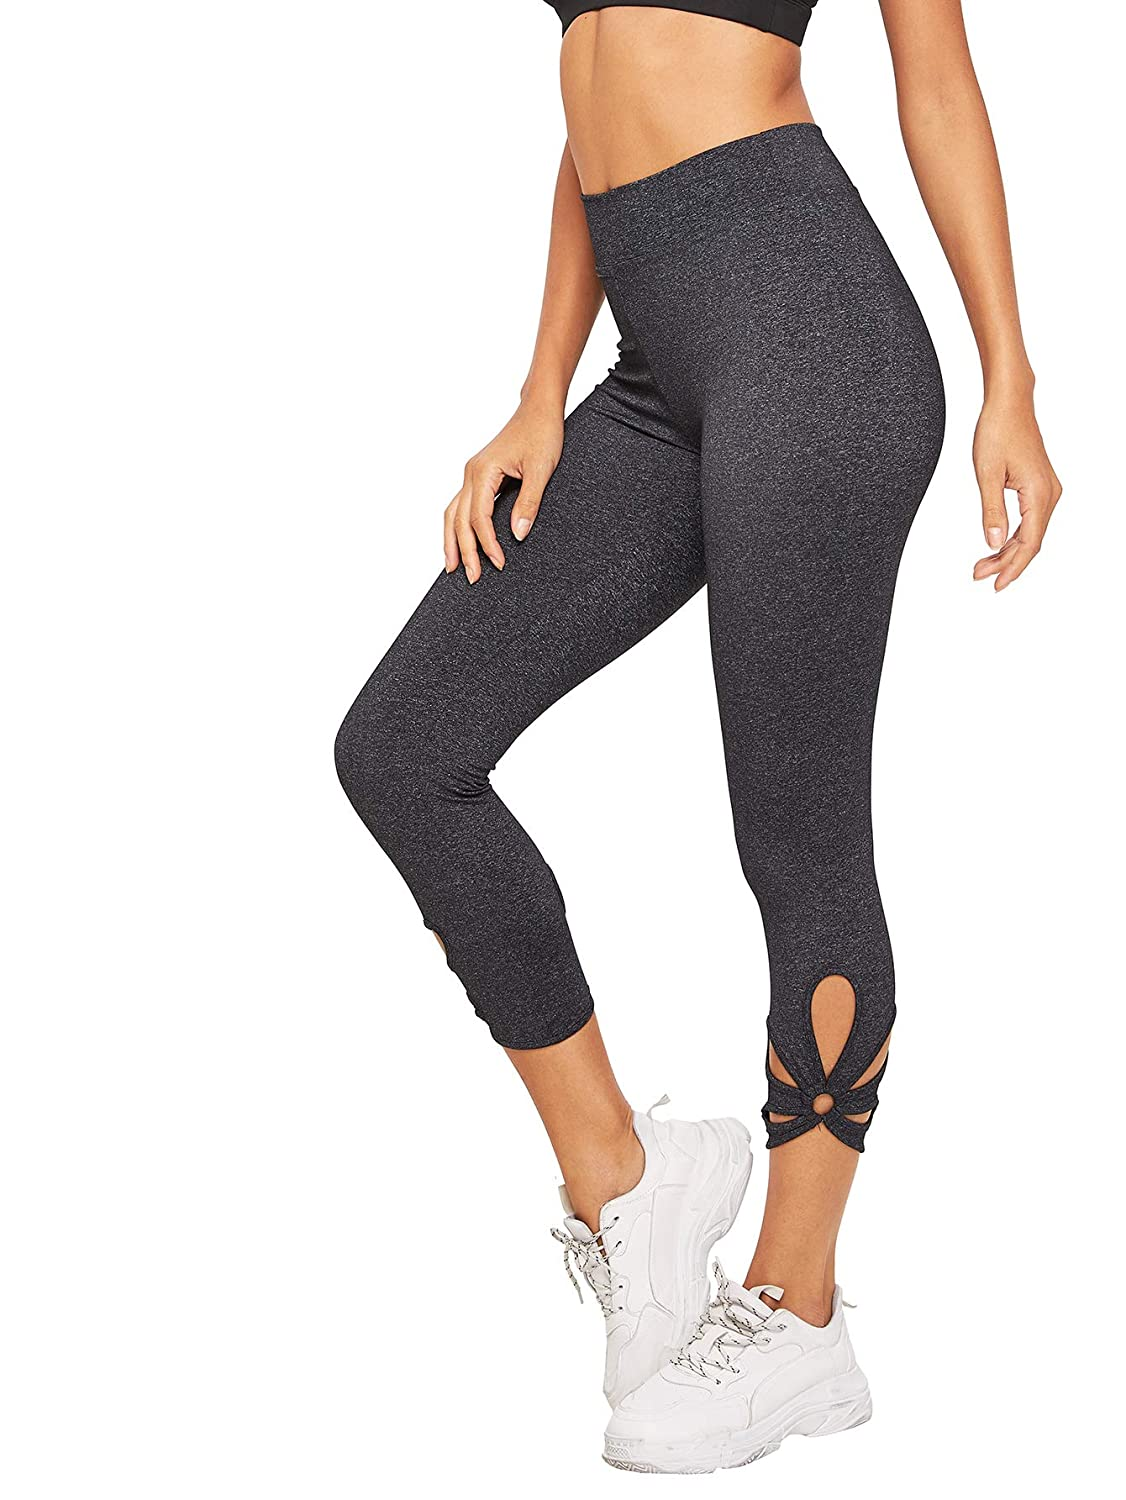 2ba9ded99bf121 Amazon.com: SweatyRocks Women's Mesh Panel Capri Leggings Workout Yoga  Running Crop Pants: Clothing